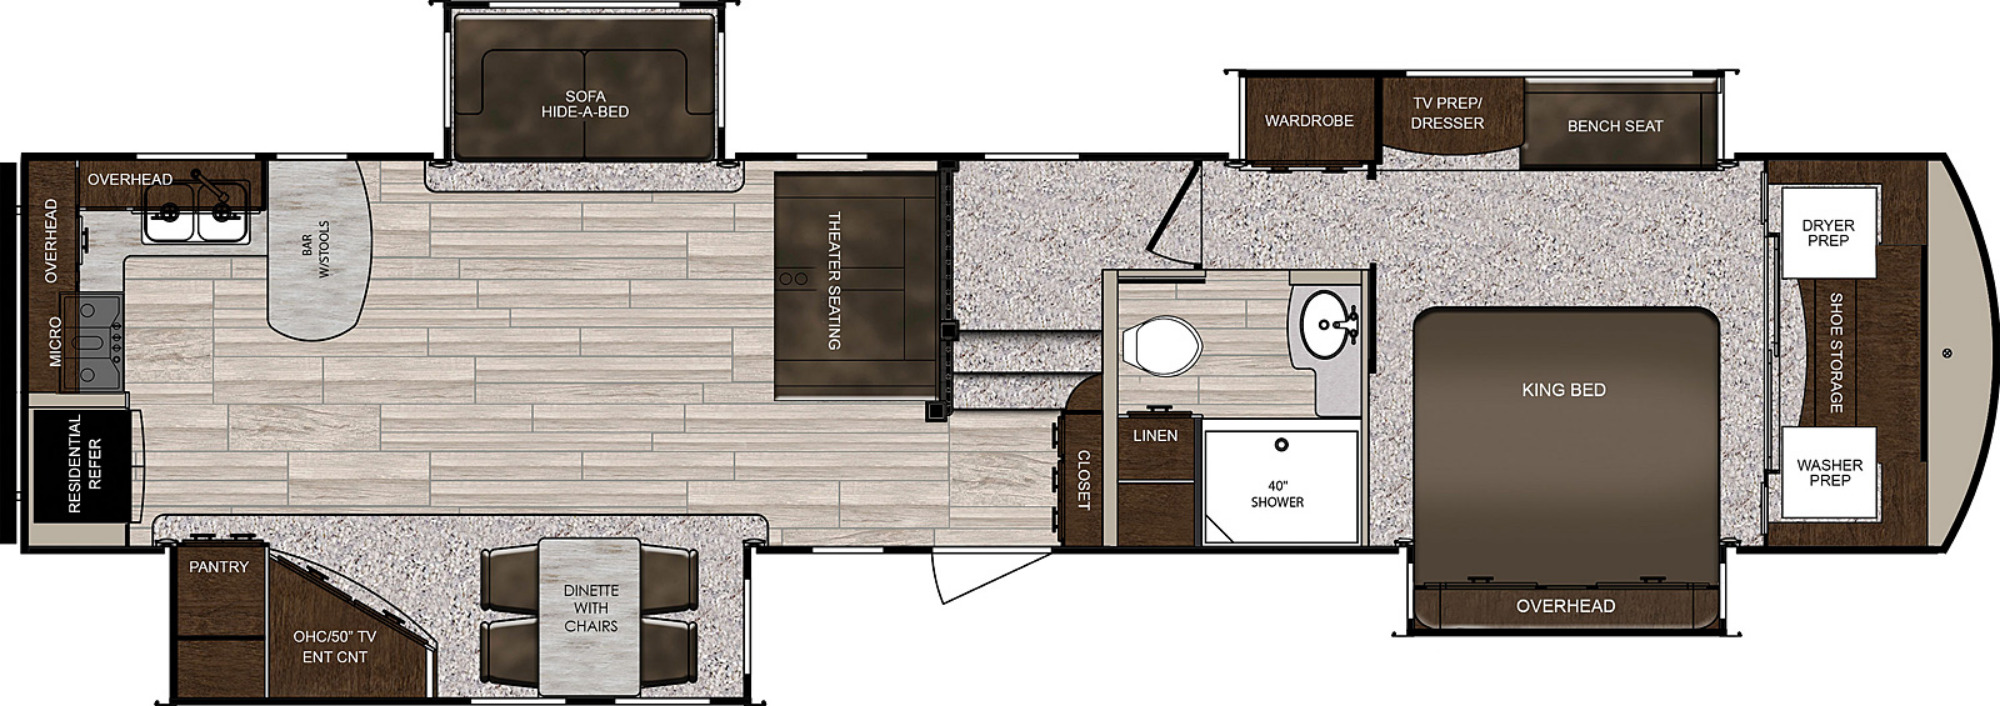 View Floor Plan for 2021 PRIME TIME SANIBEL 3702WB